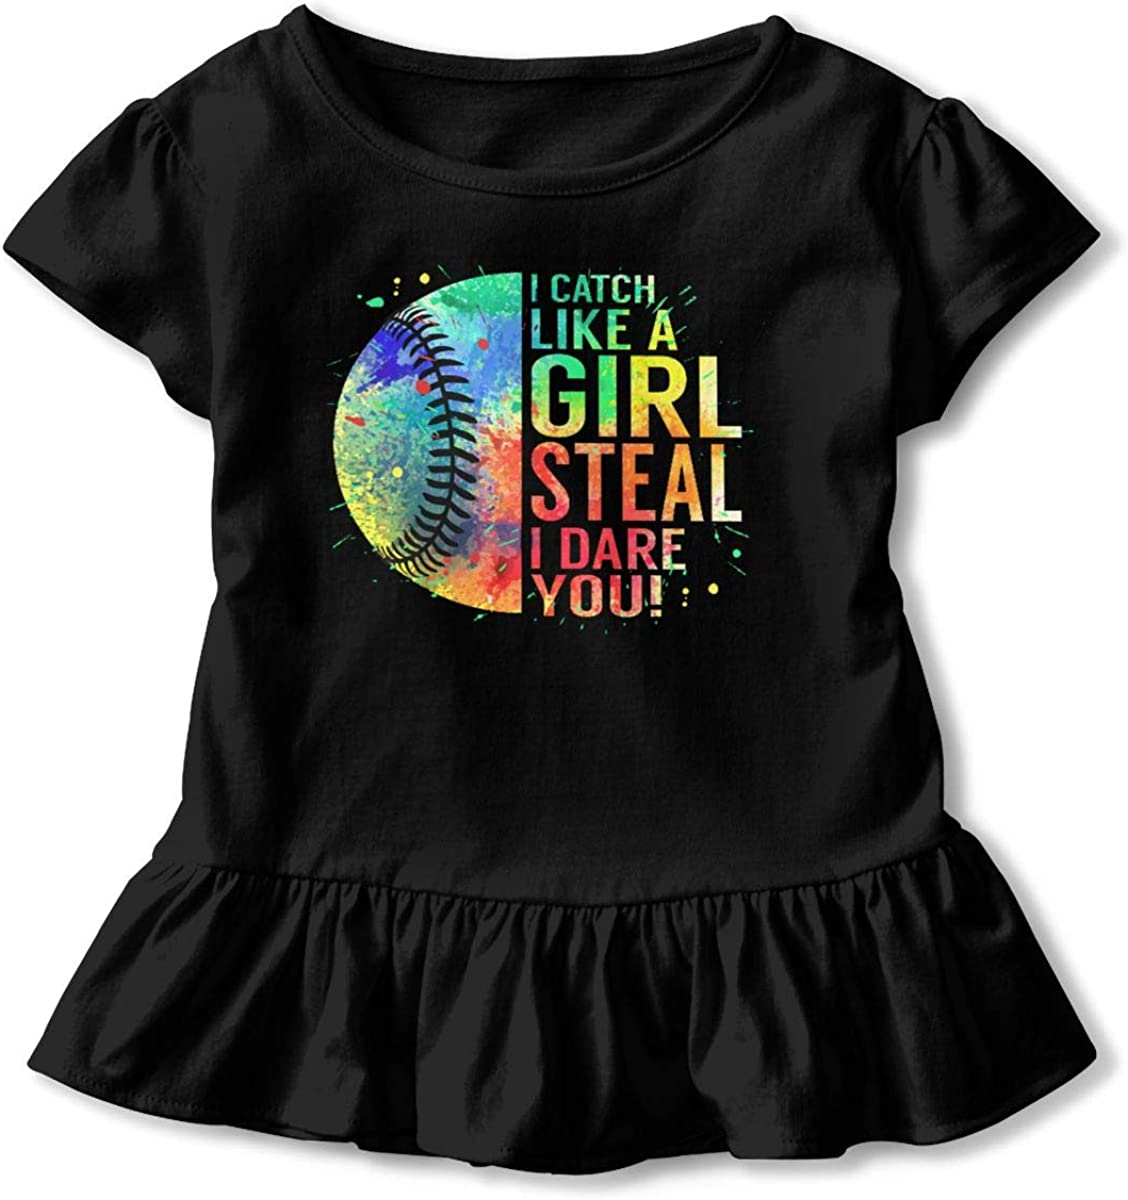 Shirt Baby Girls Ruffles O-Neck T Shirts for 2-6 Years Old Baby Black I Catch Like A Girl Steal I Dare You